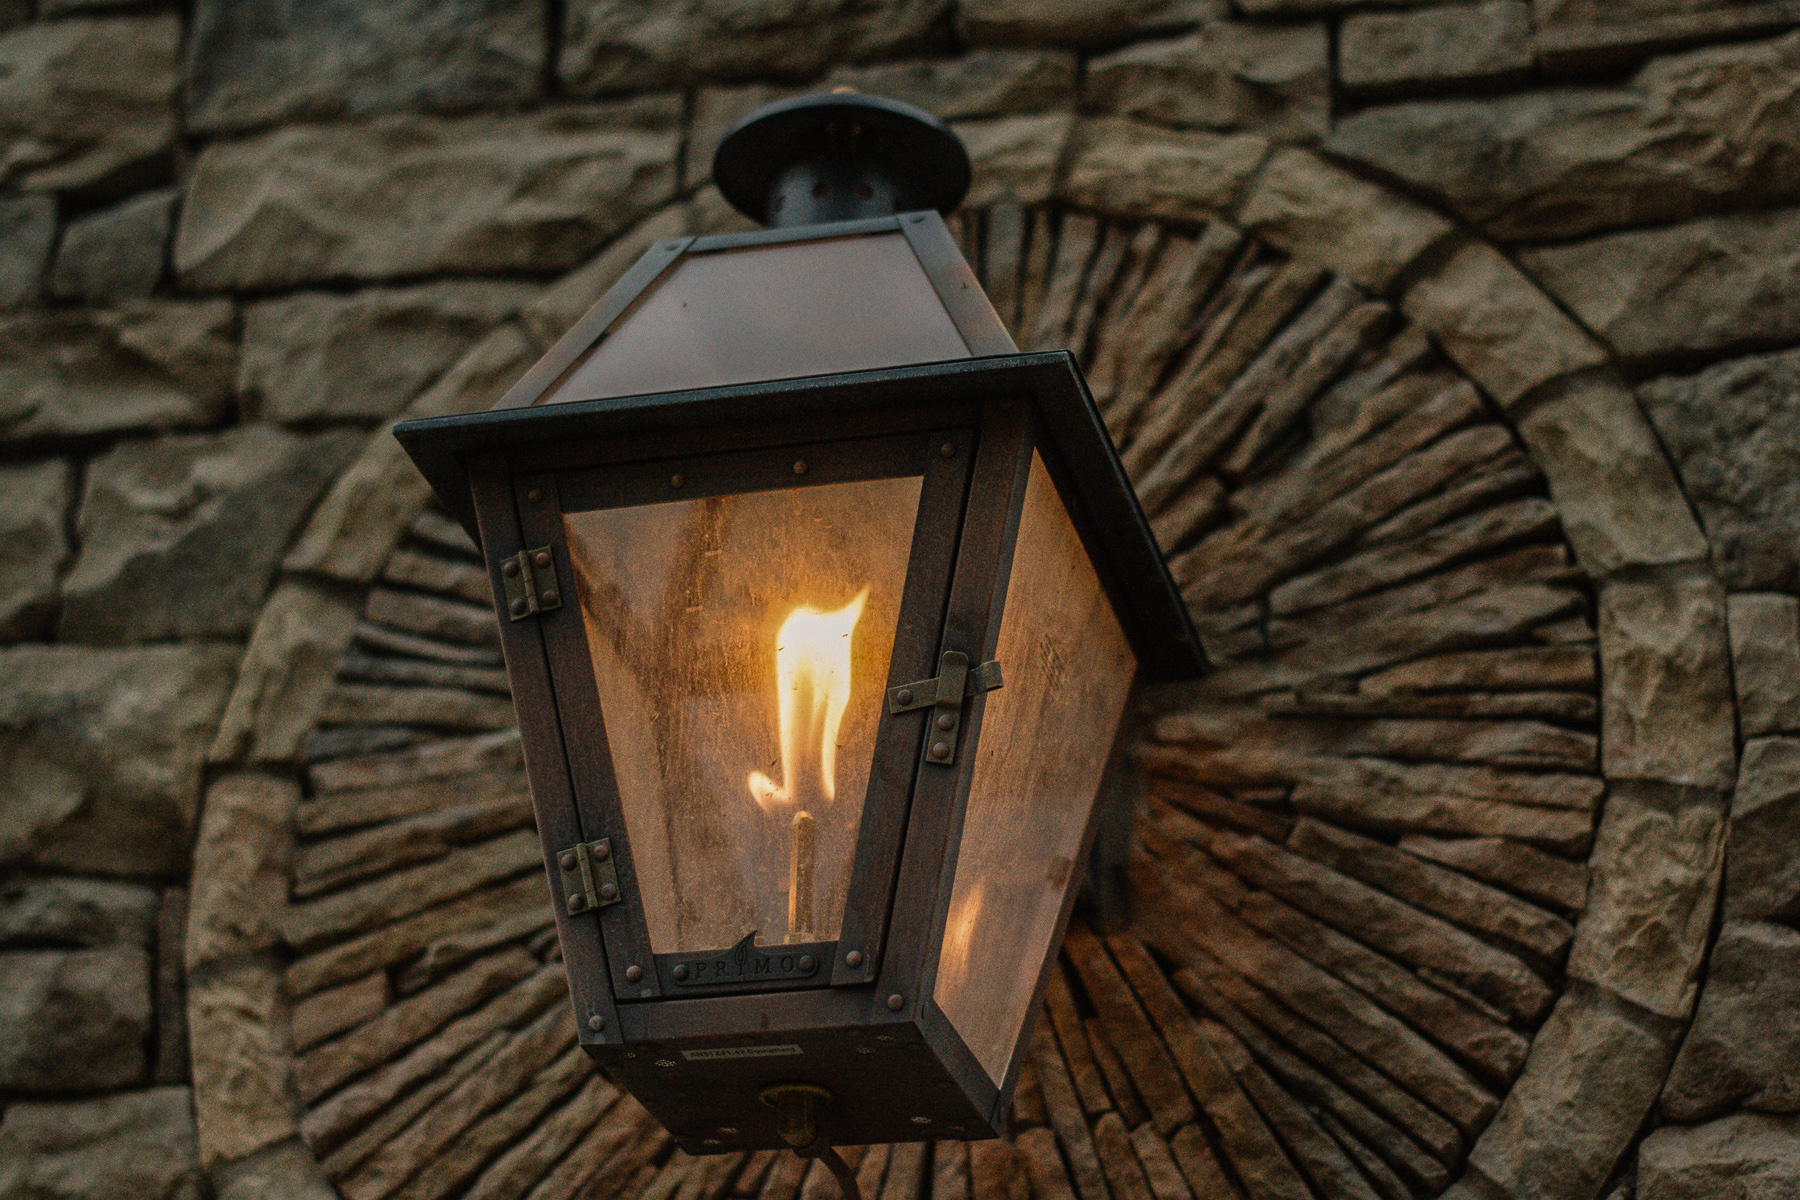 outdoor gas burning light fixture mounted on stone wall